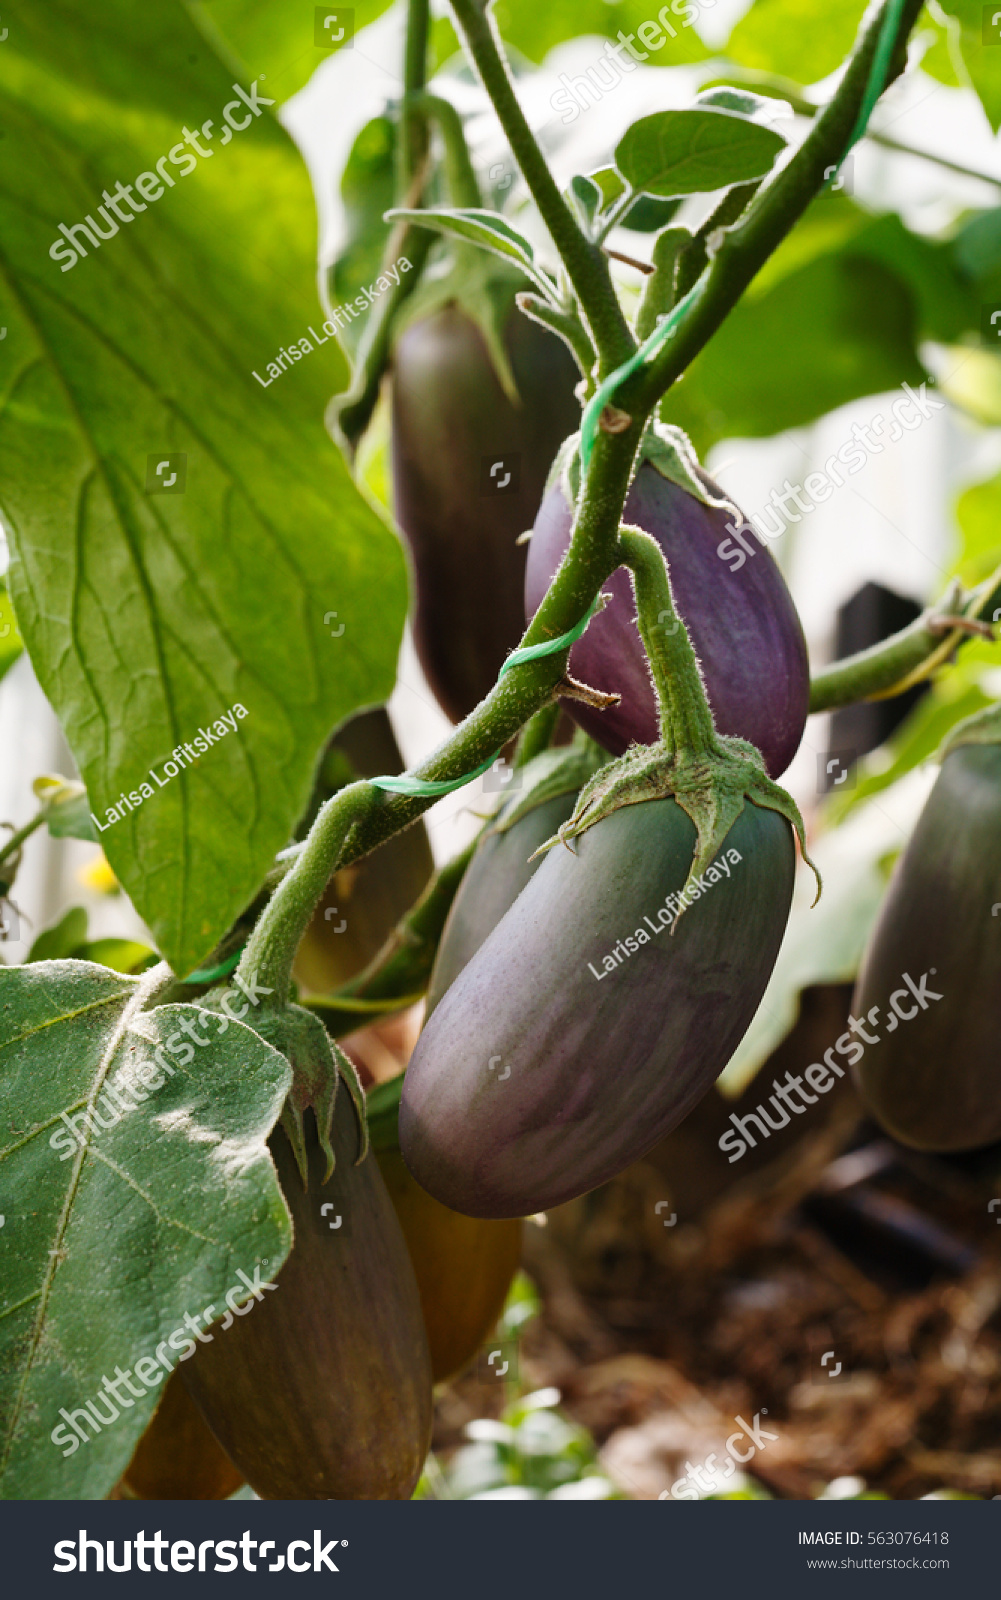 Eggplant in the greenhouse: growing and care 7